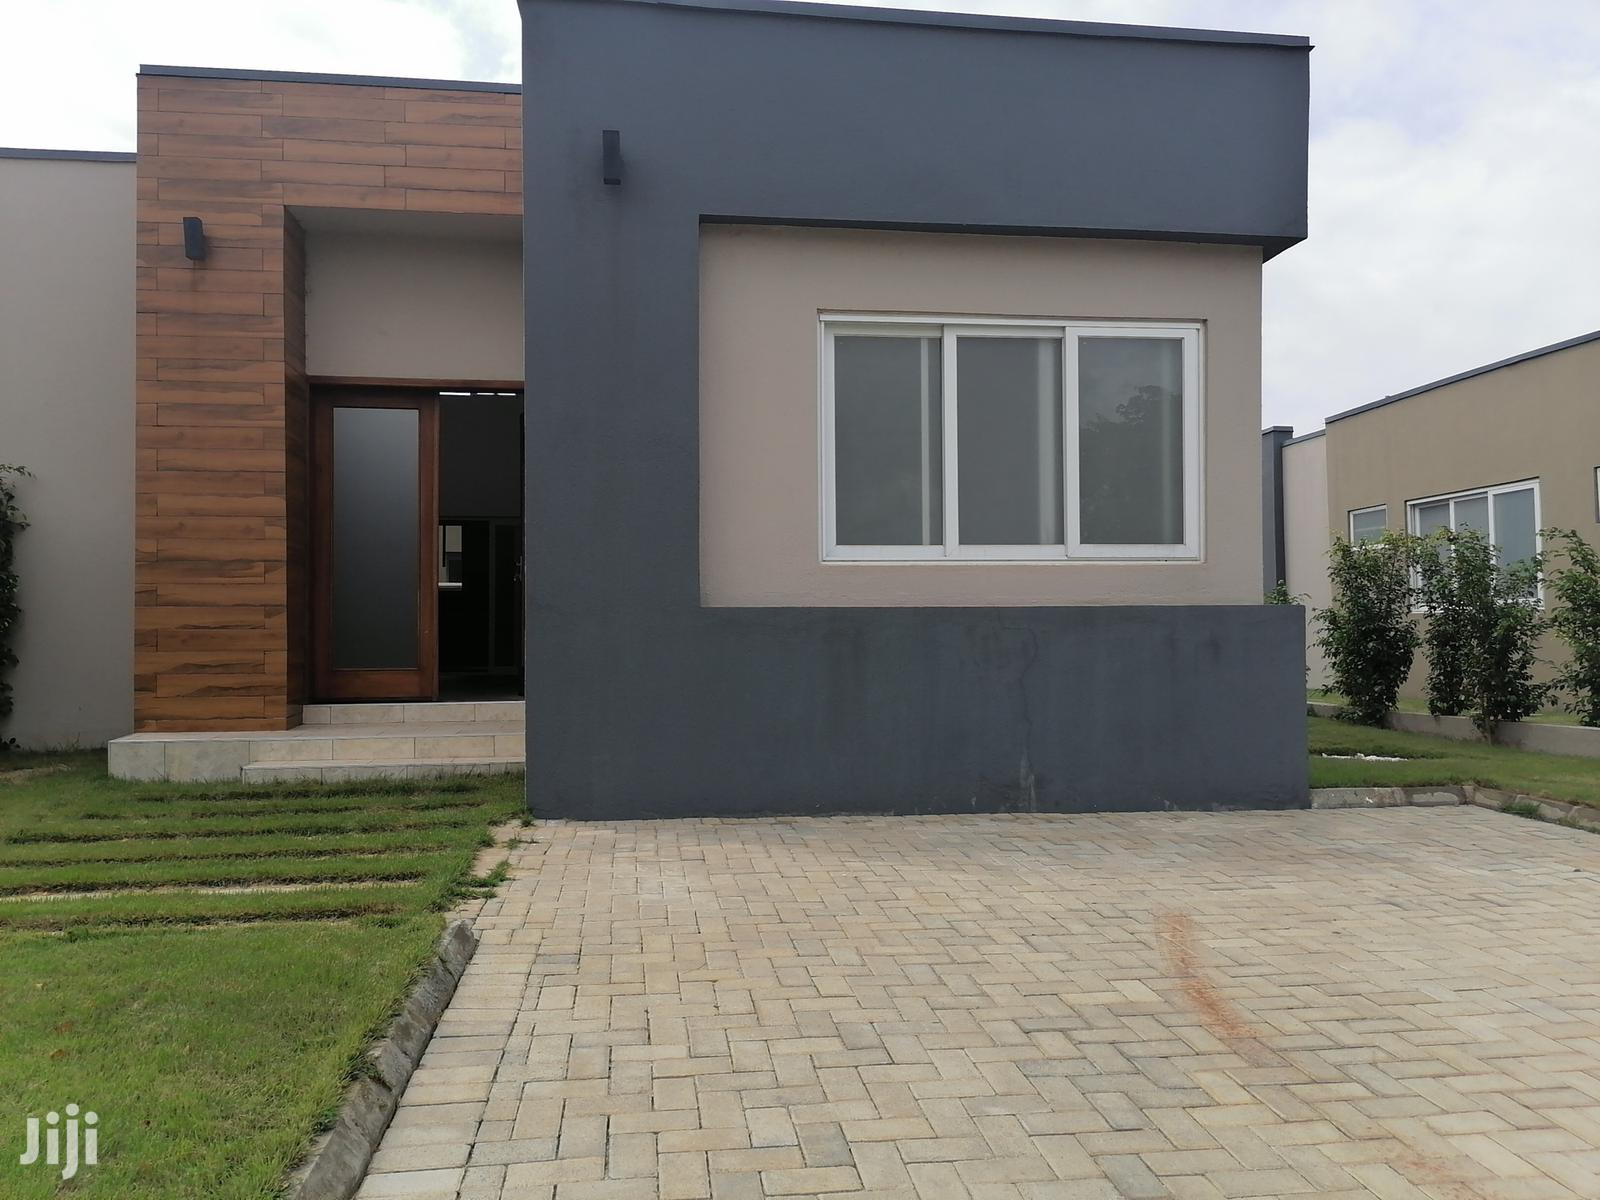 Gated Community 3 Bedroom House For Sale At East Legon Hills